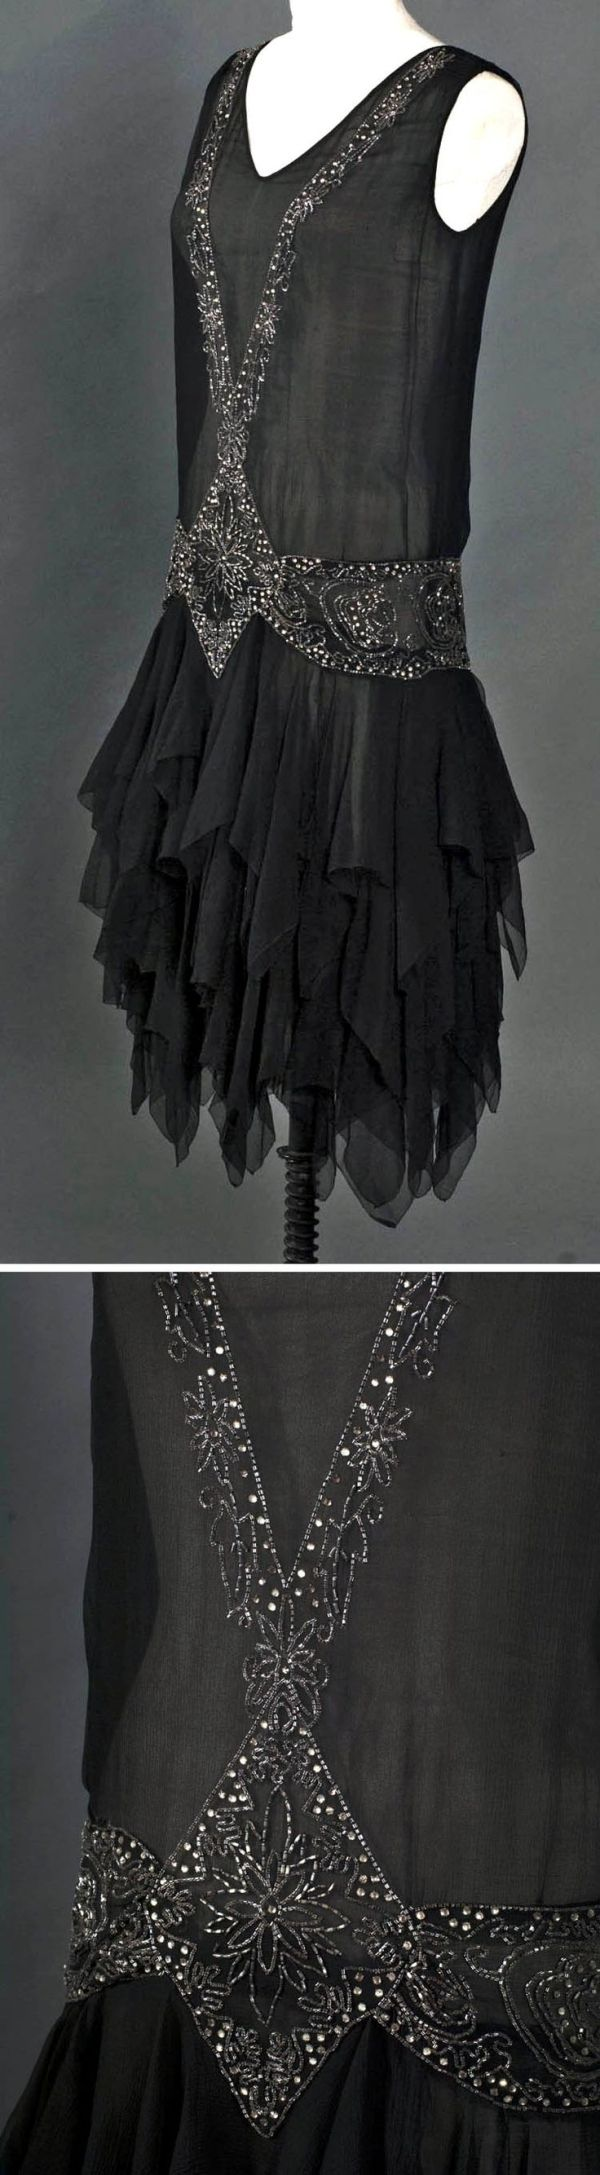 Evening dress with tiered chiffon skirt, American, ca. 1929. Made for movement & dancing. Three layers of silk chiffon cut with handkerchief hem, with many points hanging down from substantial width of beading. Above this floating base, bodice hangs smooth & straight. Silver bugle beads & rhinestones. Smith College Historic Clothing by earlene